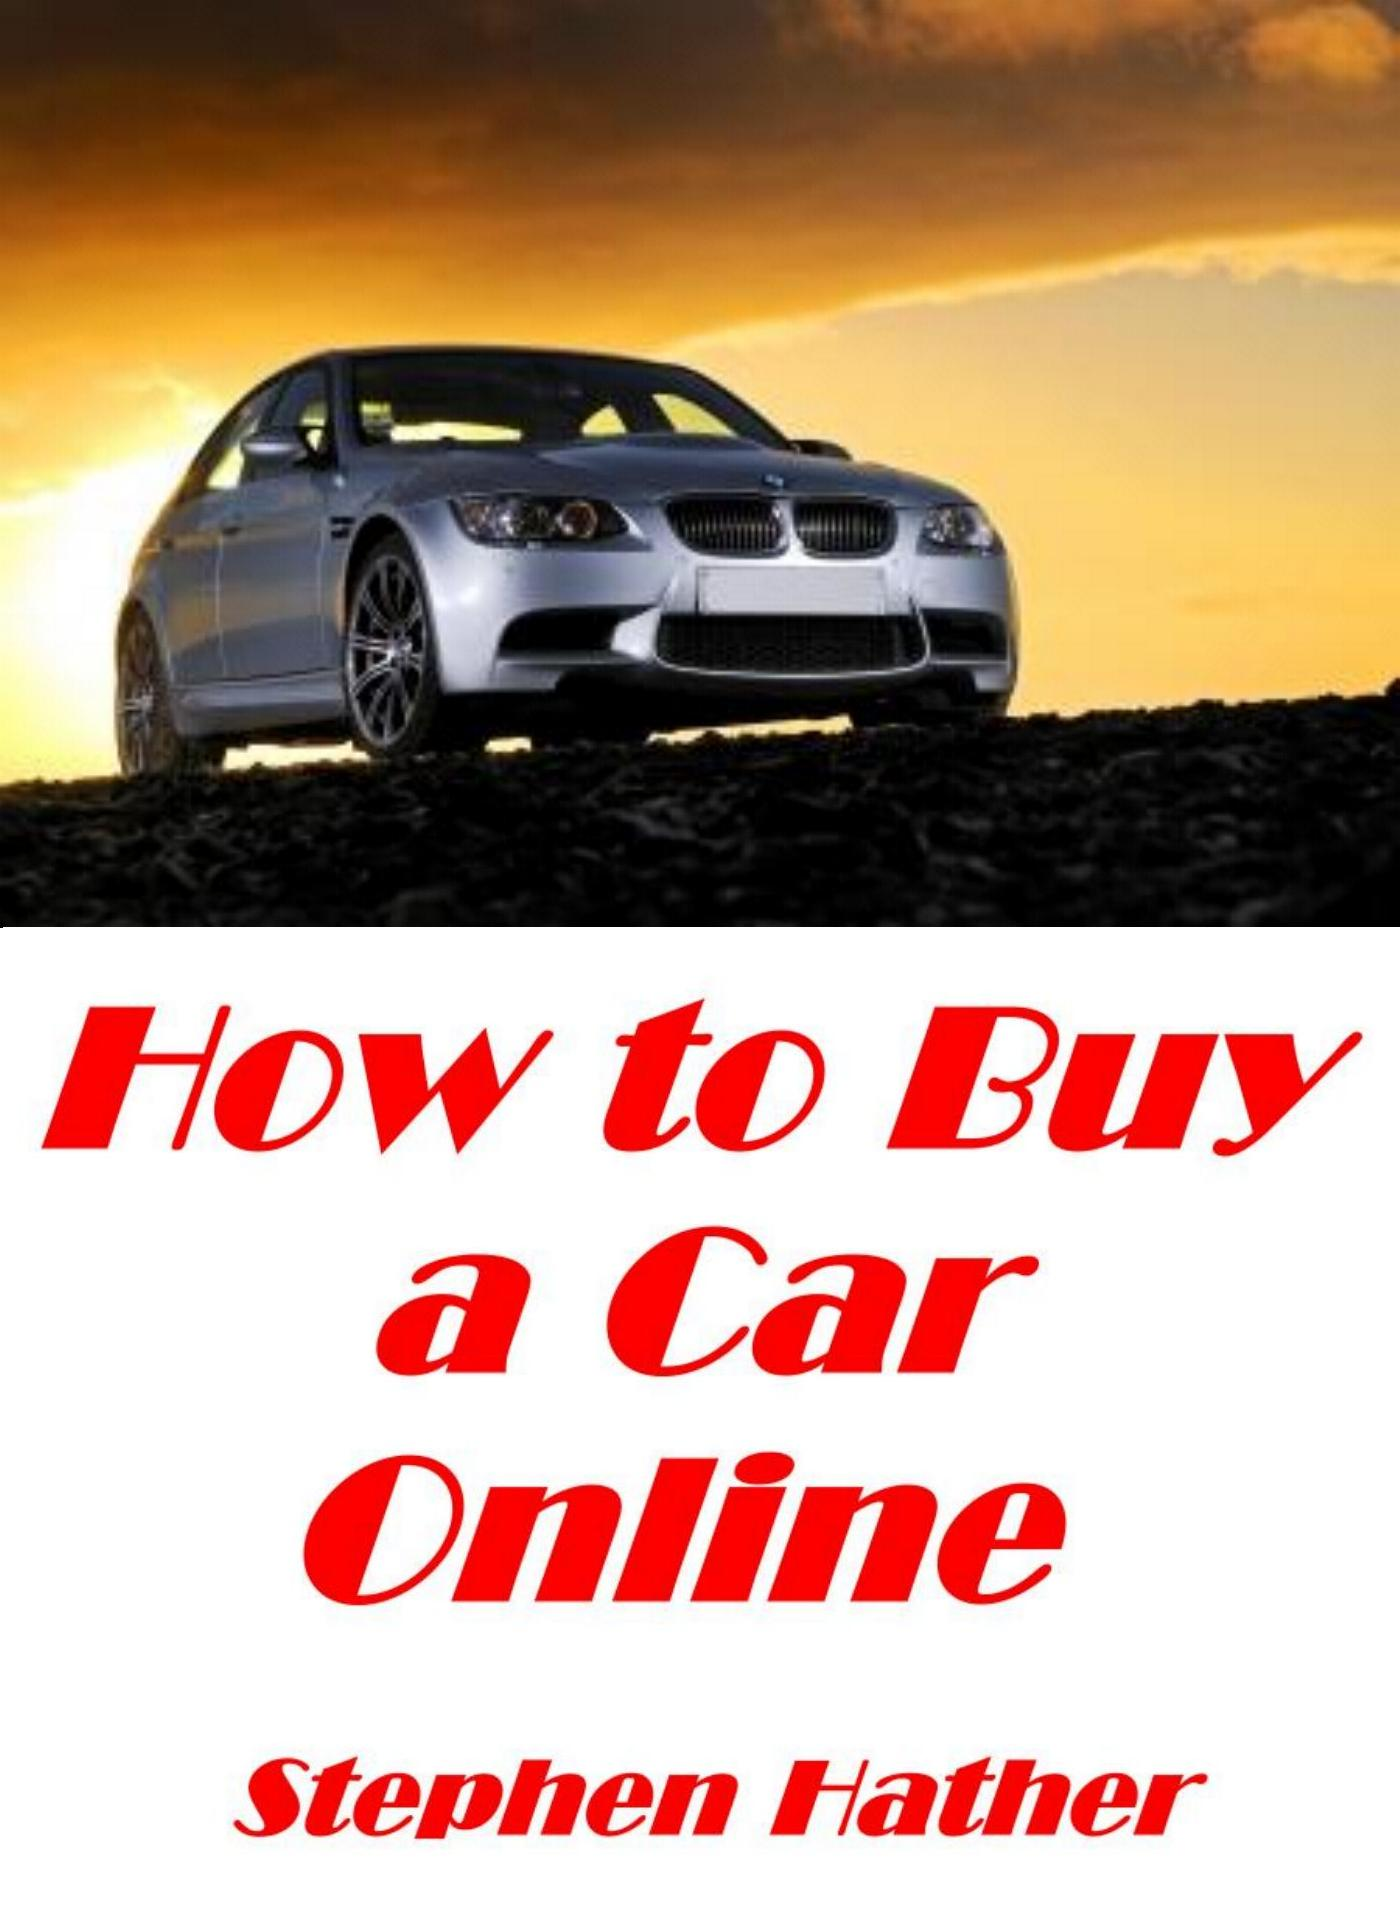 Stephen Hather - How to Buy a Car Online